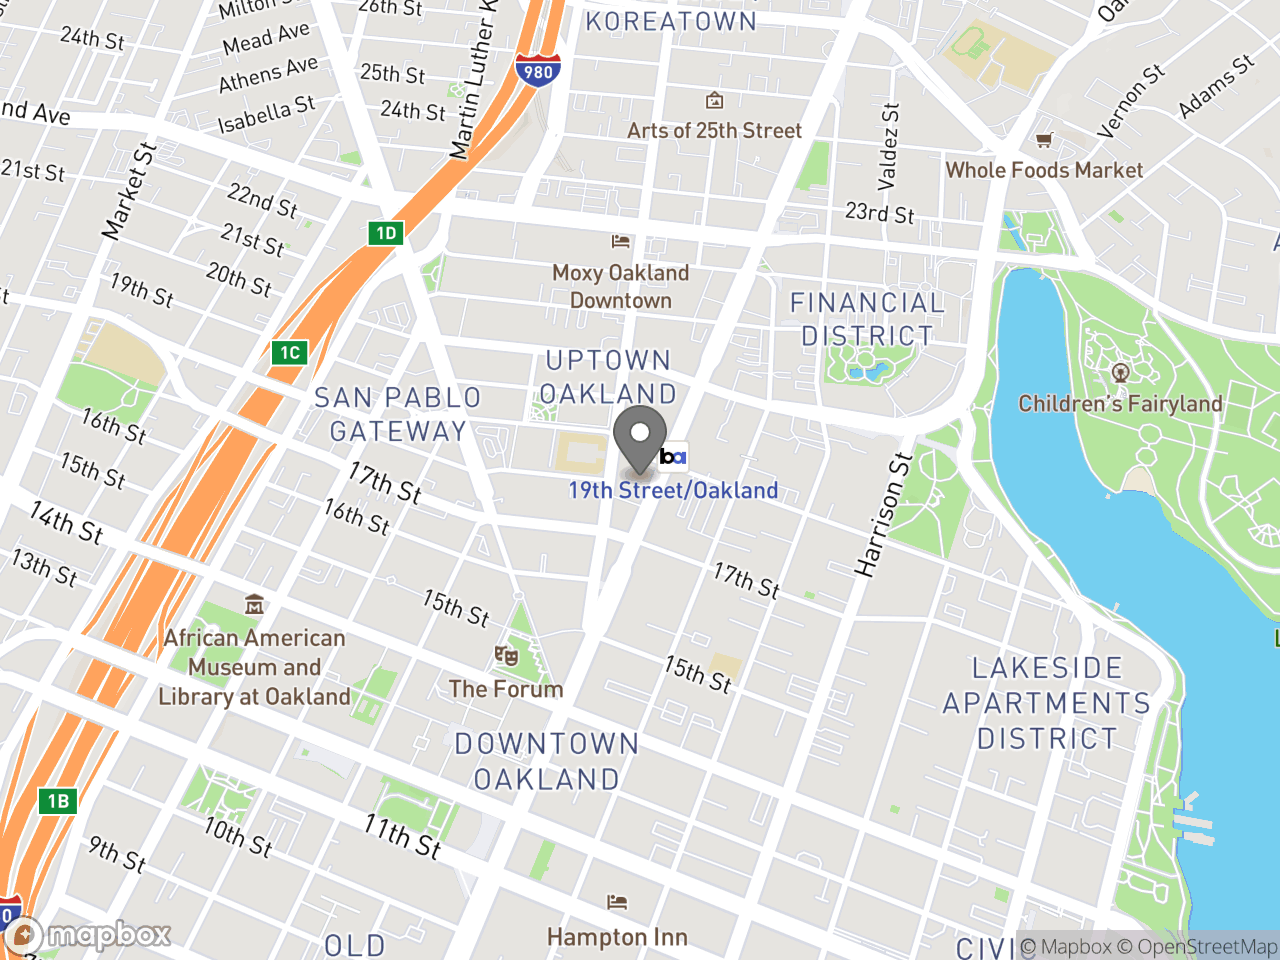 Map image for June 24, 2019 Special Planning Commission Meeting Downtown Oakland Specific Plan Implementation Intensive (Part I of II), located at 1721 Broadway in Oakland, CA 94612